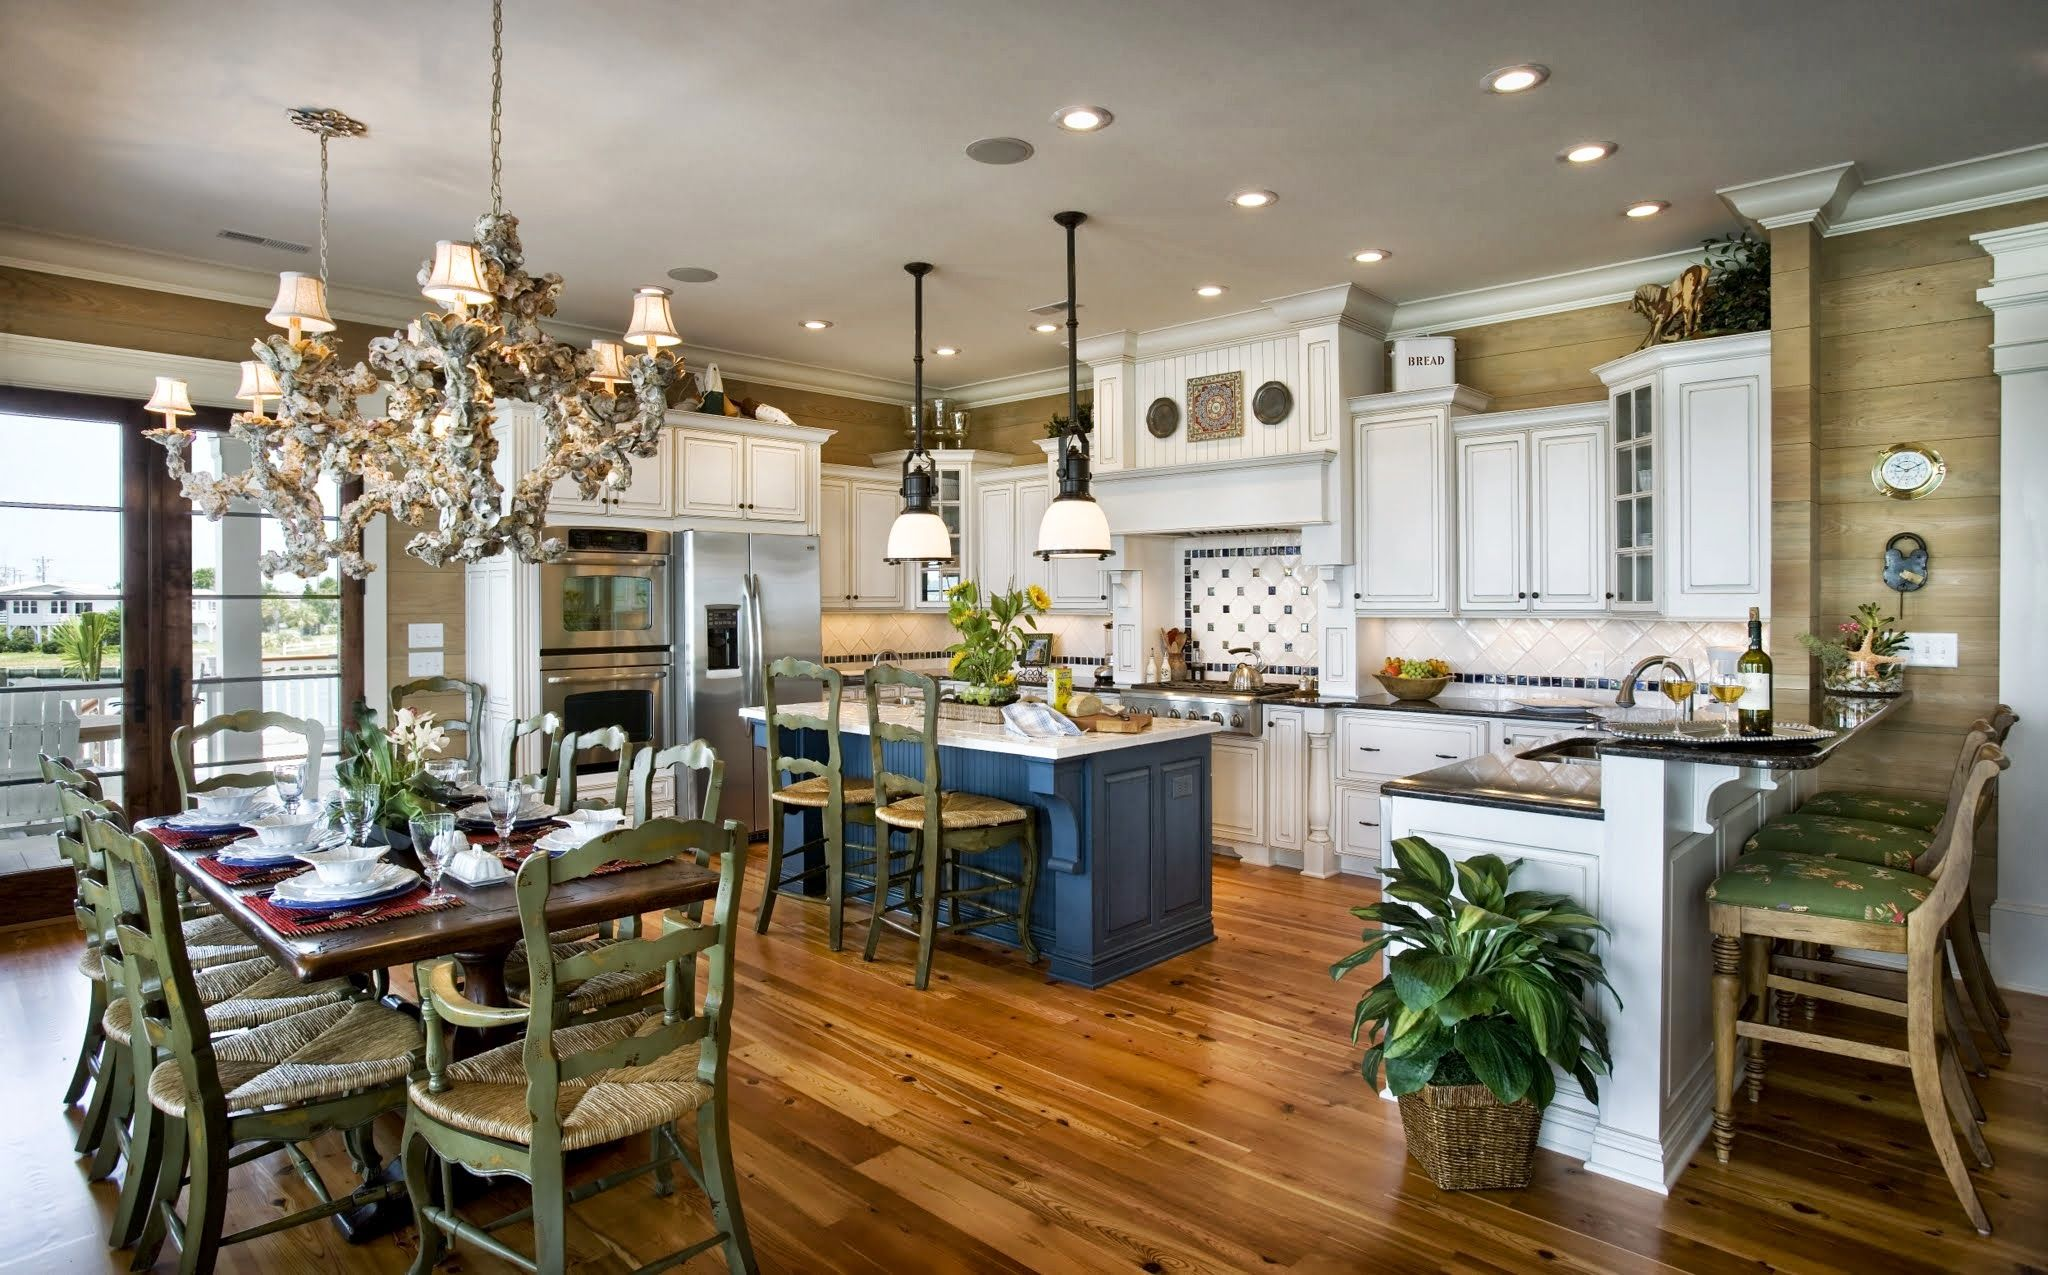 Henry Iii Inlet Harbour Custom Design Chd Interiors Southern Kitchenscountry